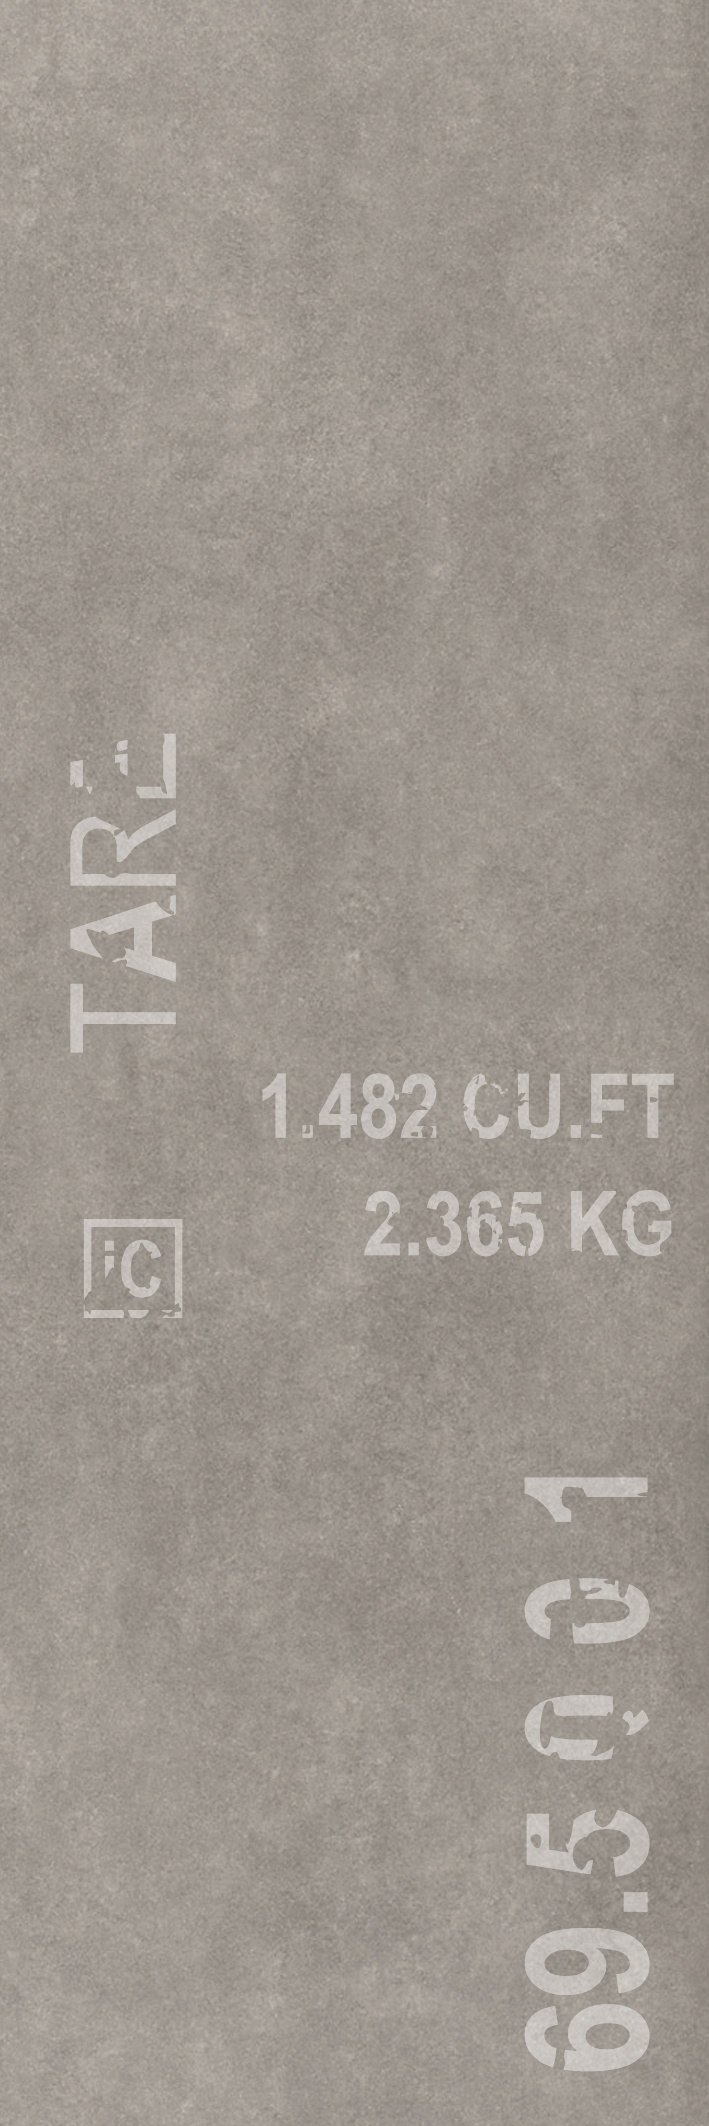 Linea EXTREME Stamp 2 by Margres  1x3m laminated stoneware 3,5mm thickness